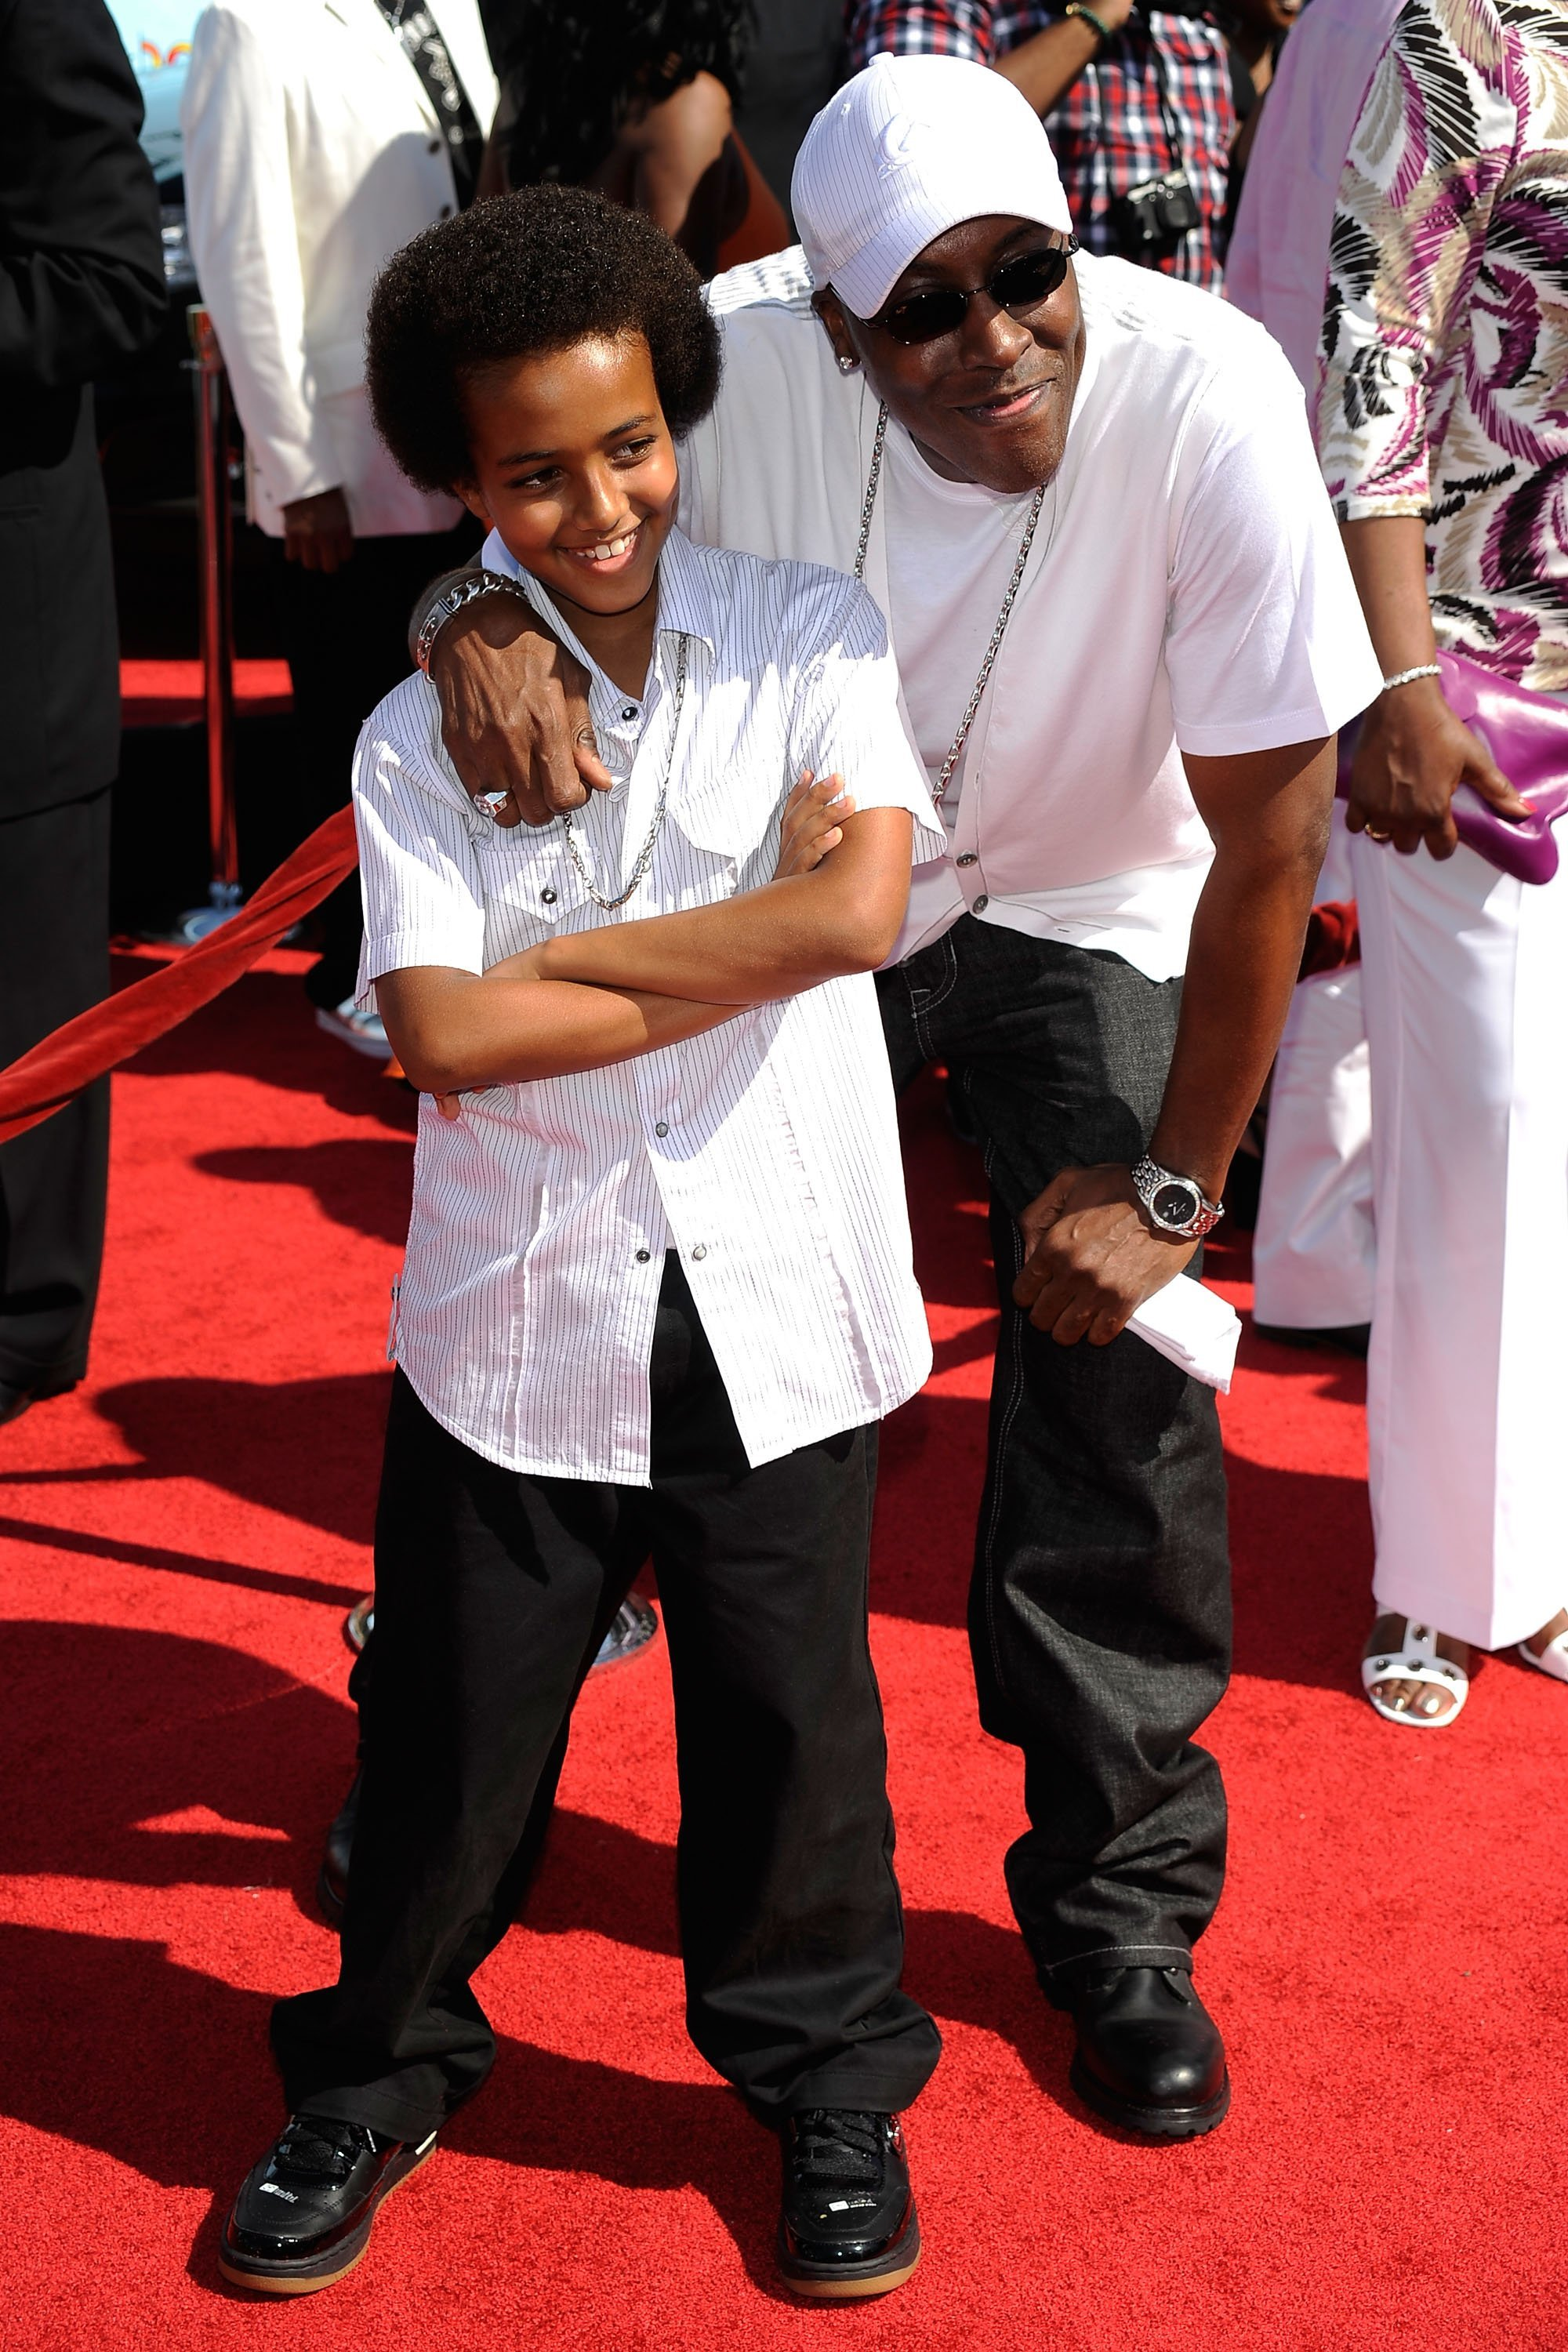 Arsenio Hall and son Arsenio Hall Jr. arrive at the 2009 BET Awards held at the Shrine Auditorium on June 28, 2009 | Photo: GettyImages